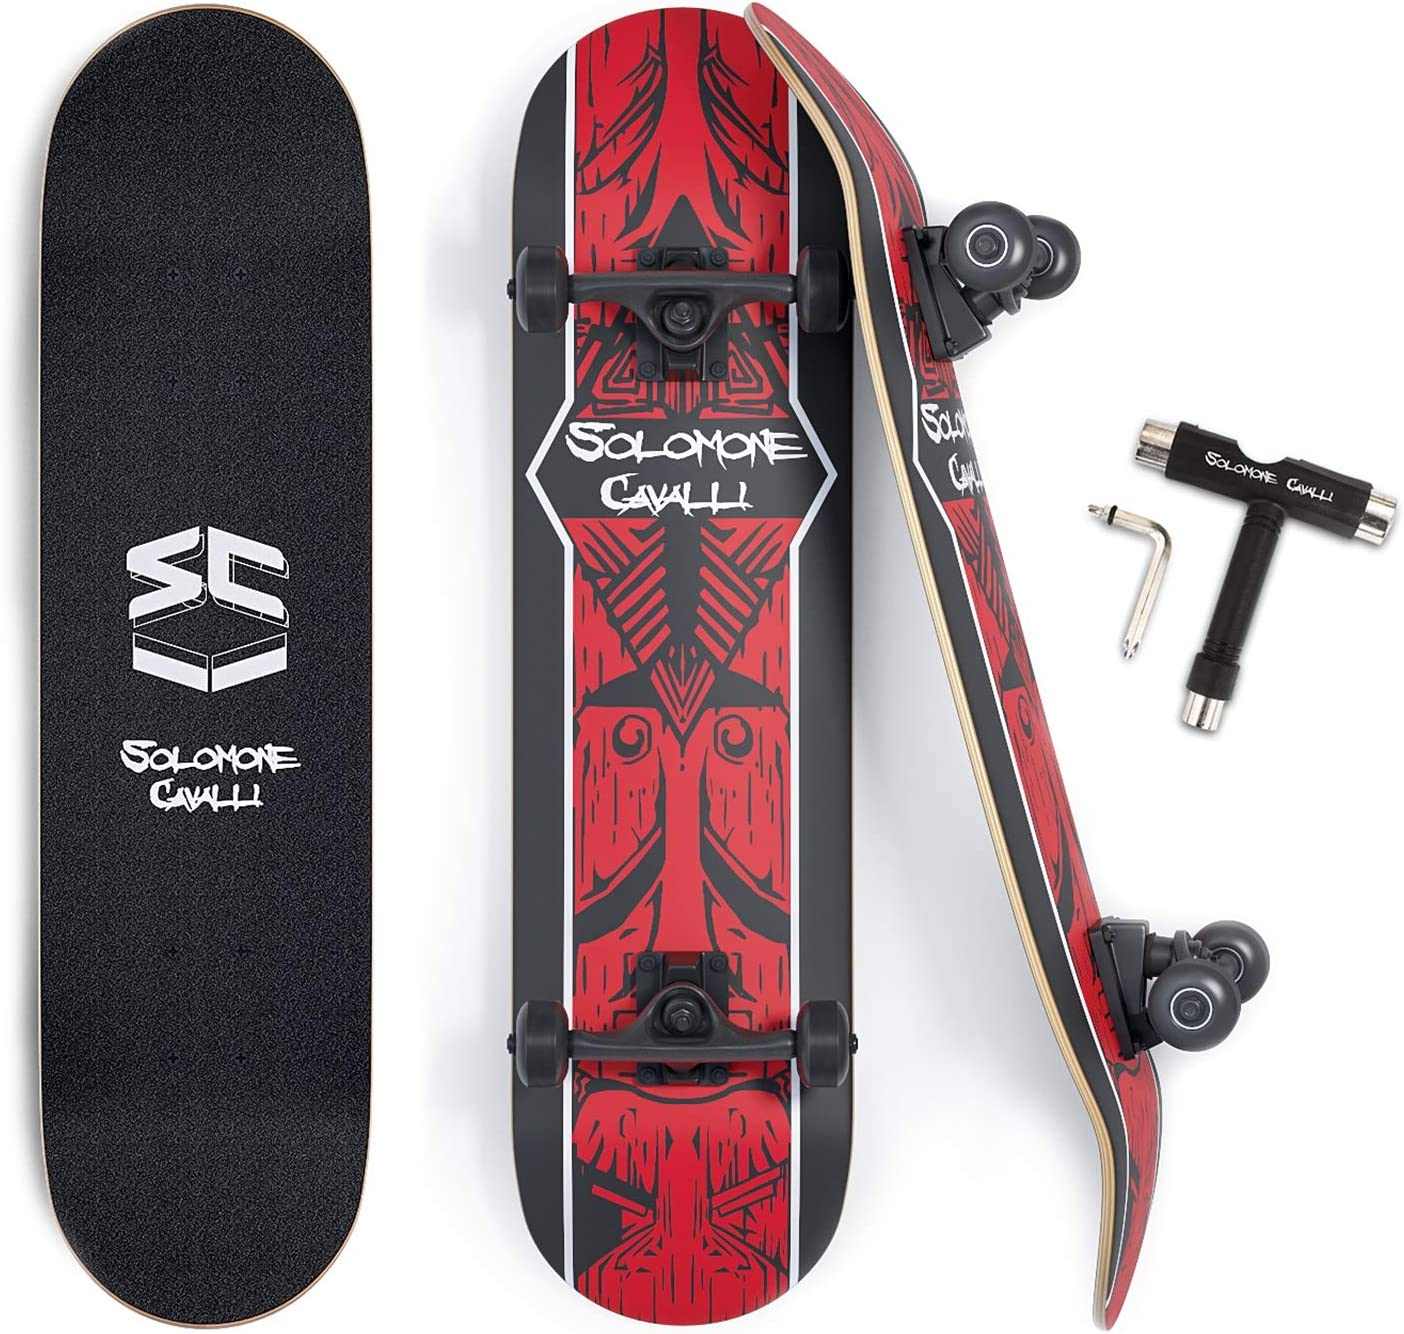 with All-in-One Skate T-Tool/¡/ Solomone Cavalli Standard Skateboard Complete 31 Double Kick Concave Skateboard for Beginners and Pro Kids Teens Adults